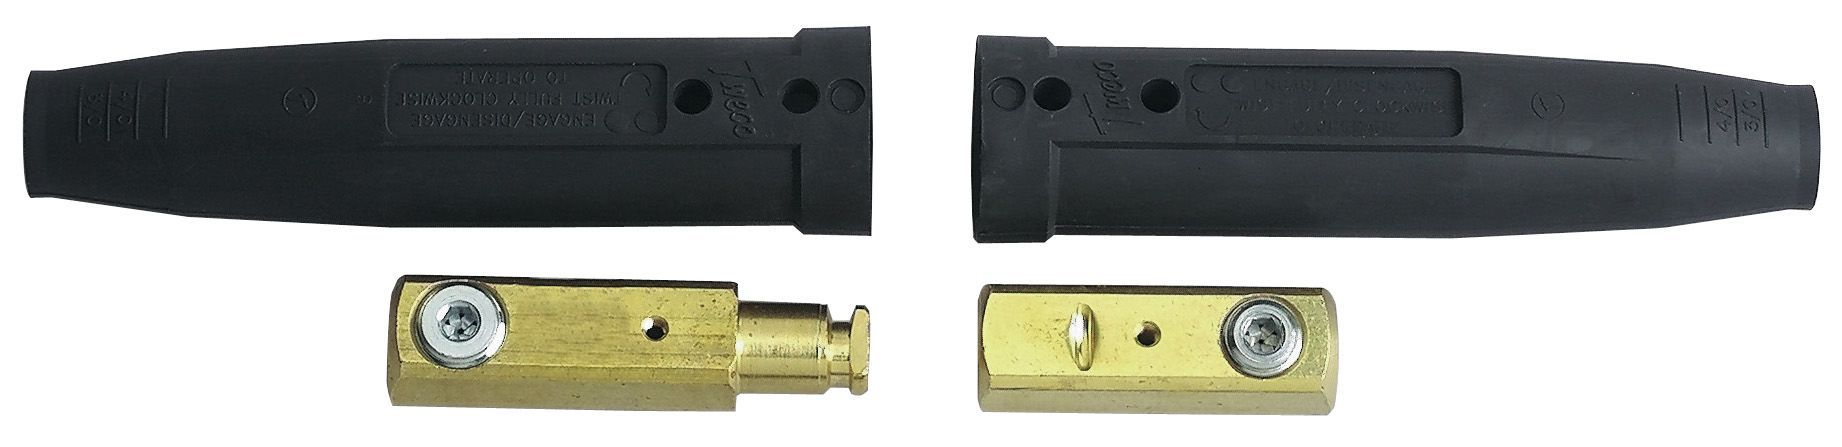 Tweco Weld Cable Connectors (Male/Female) - 4MPC